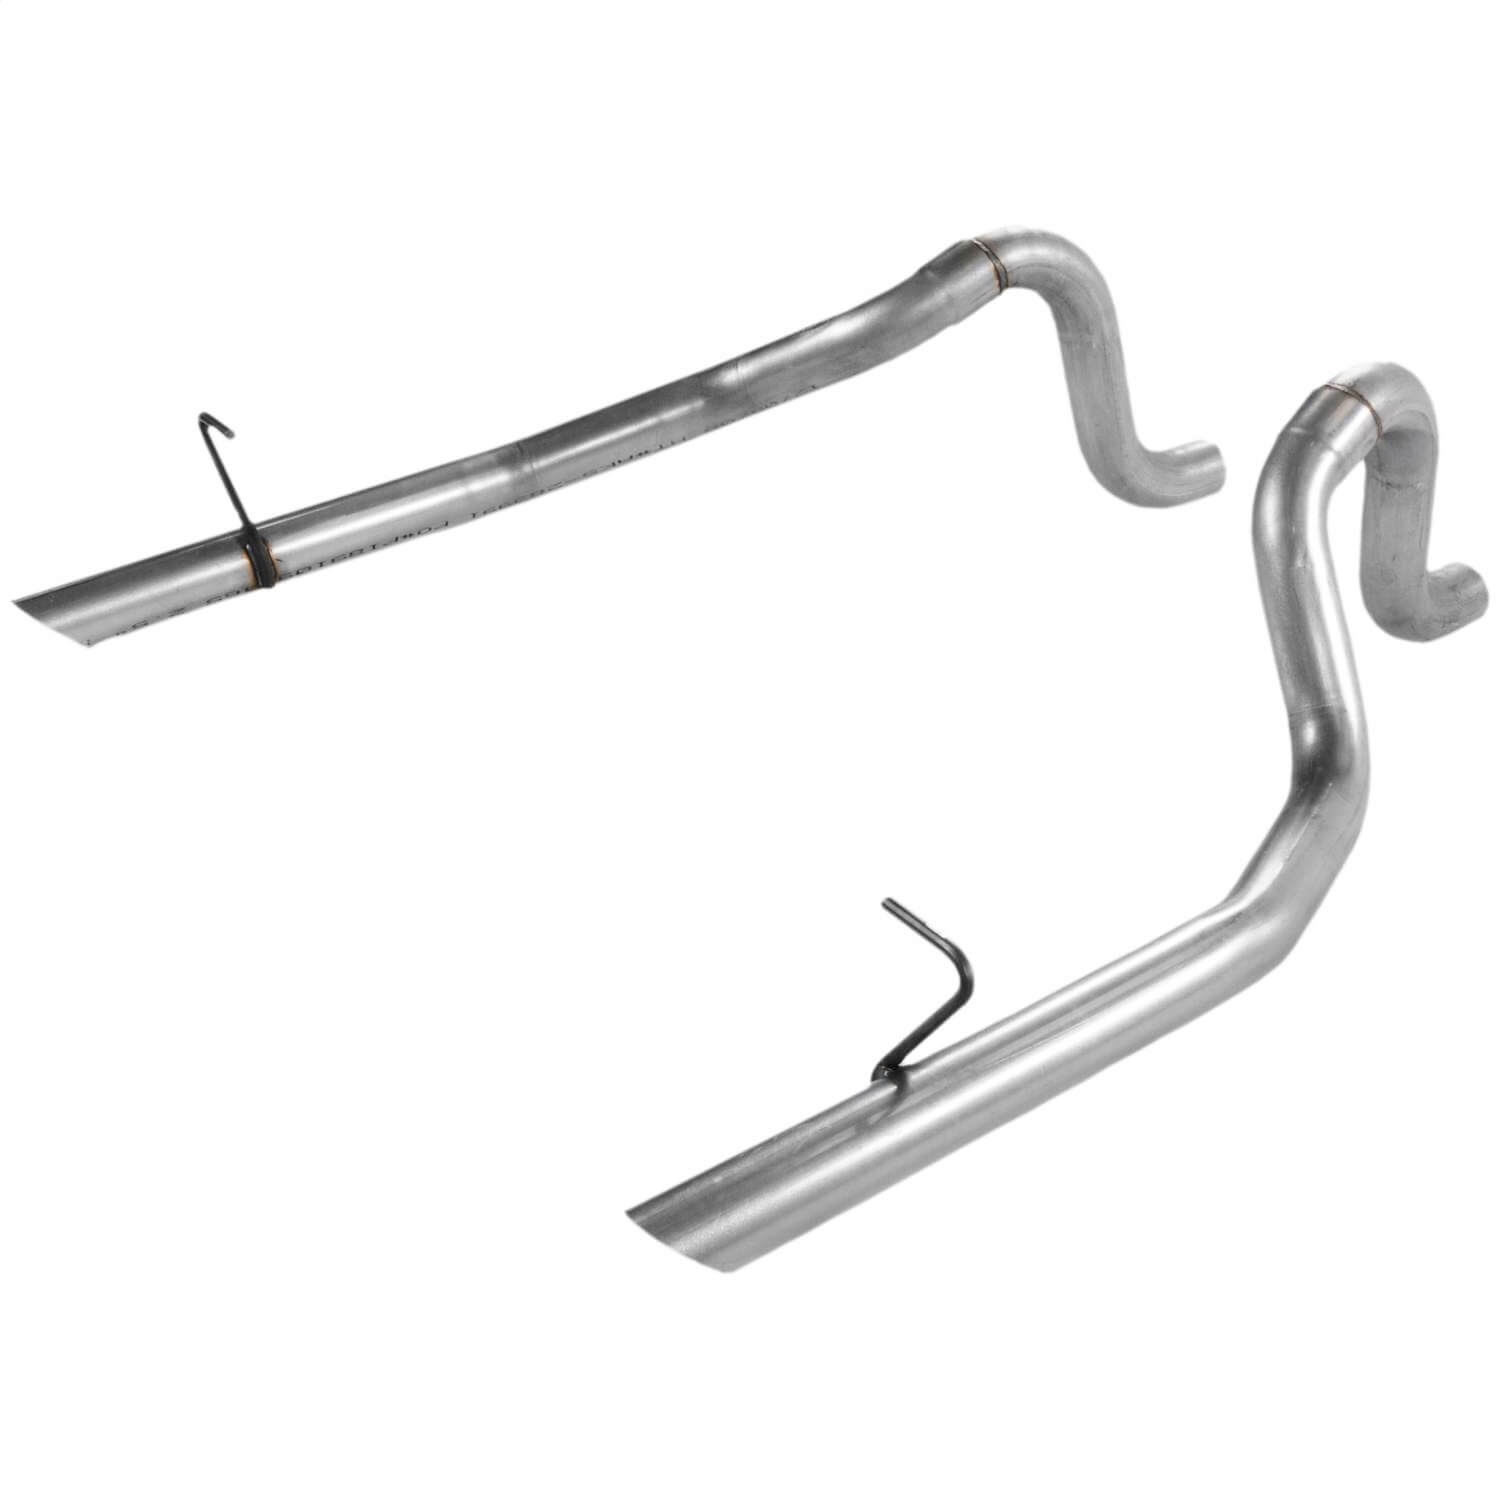 Flowmaster 15804 Tailpipe Set Fits 86-93 Mustang